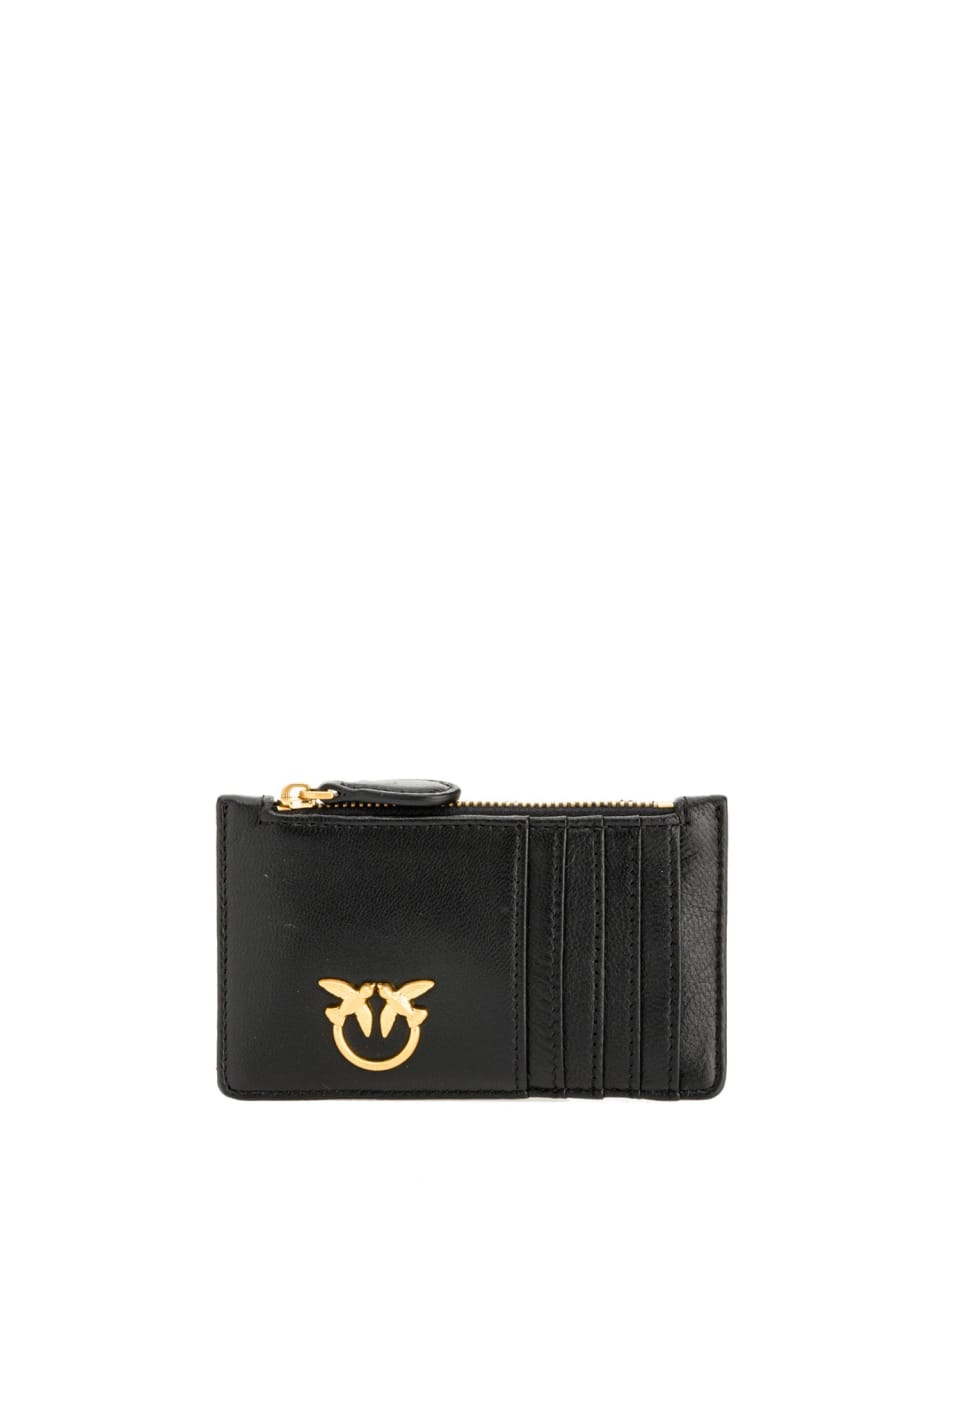 Nappa leather credit card holder with zip